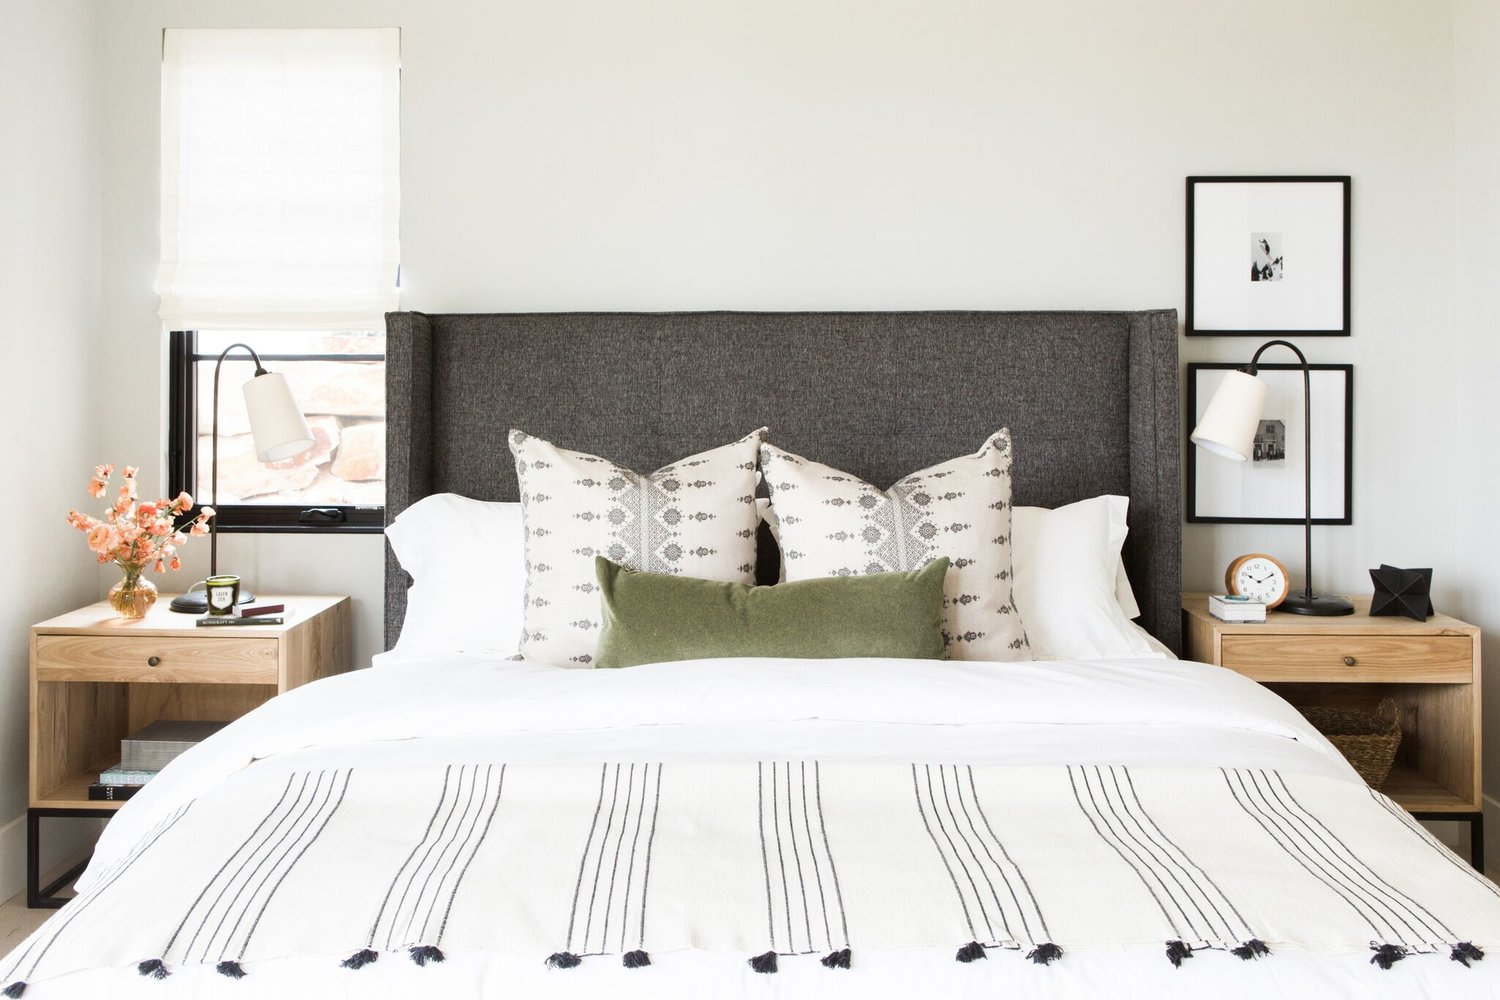 Large white bed with grey headboard